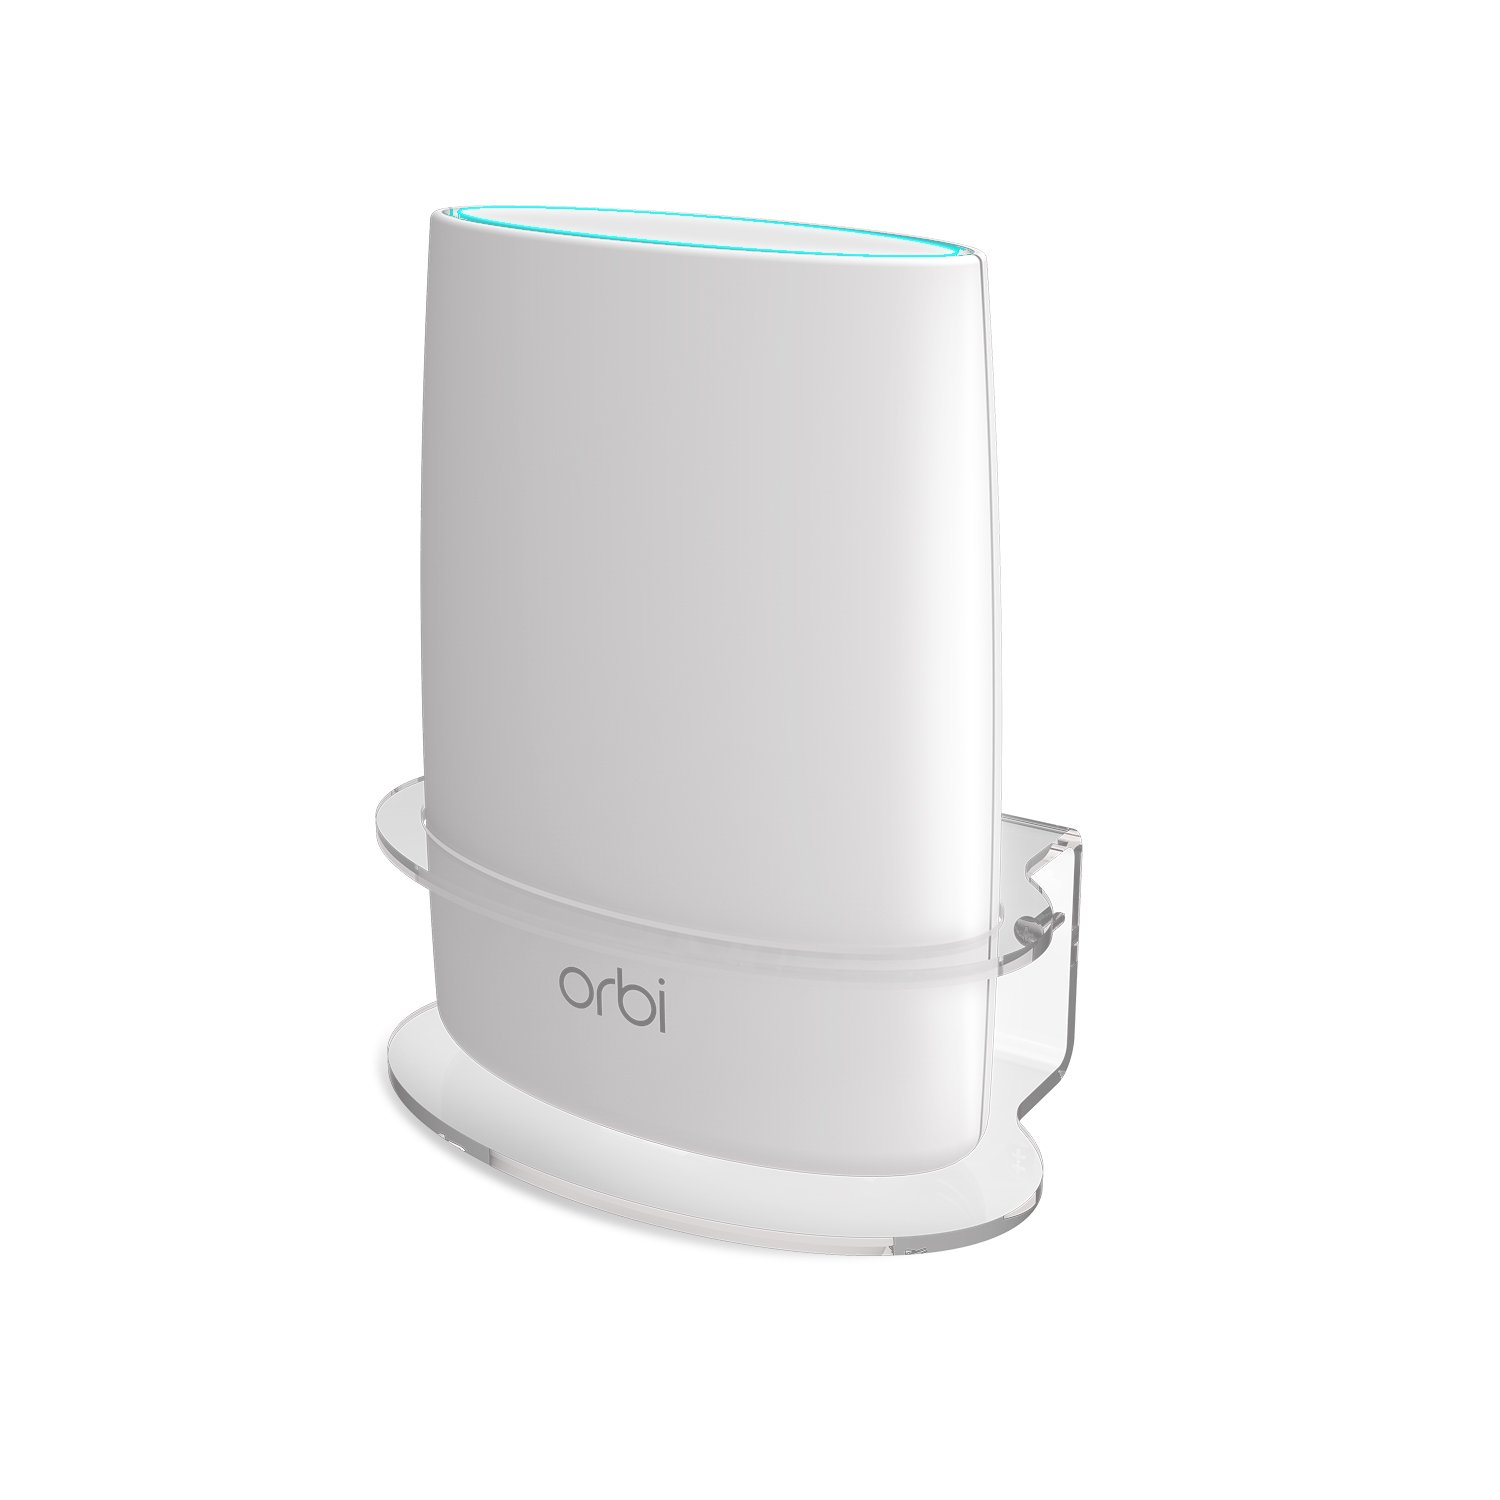 Netgear Orbi Wall Mount, BASSTOP Sturdy Clear Acrylic Wall Mount Bracket for NETGEAR ORBI AC3000/AC2200 Tri Band Home WiFi Router- (1 Pack)